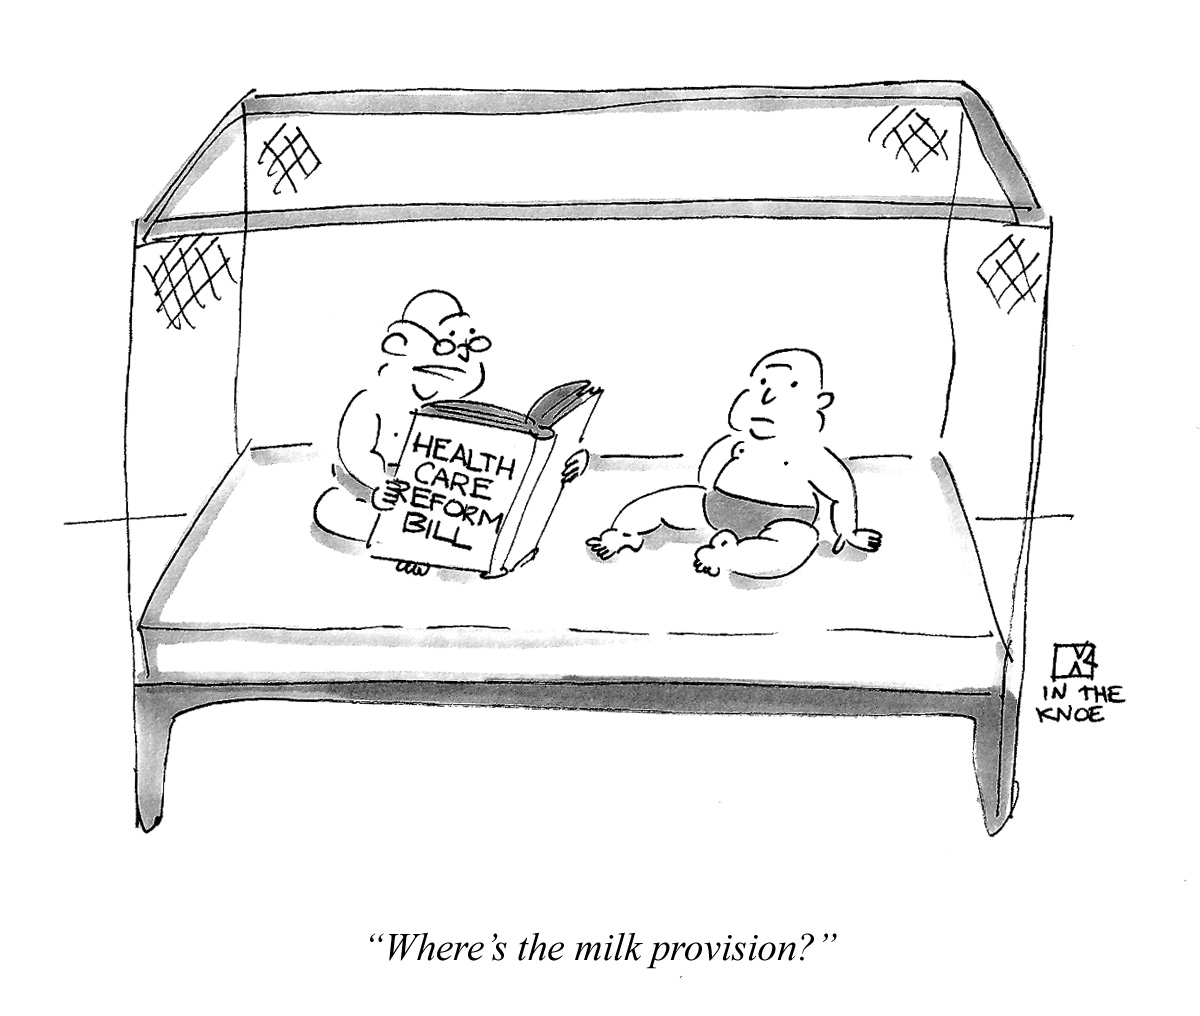 Where's the milk provision?